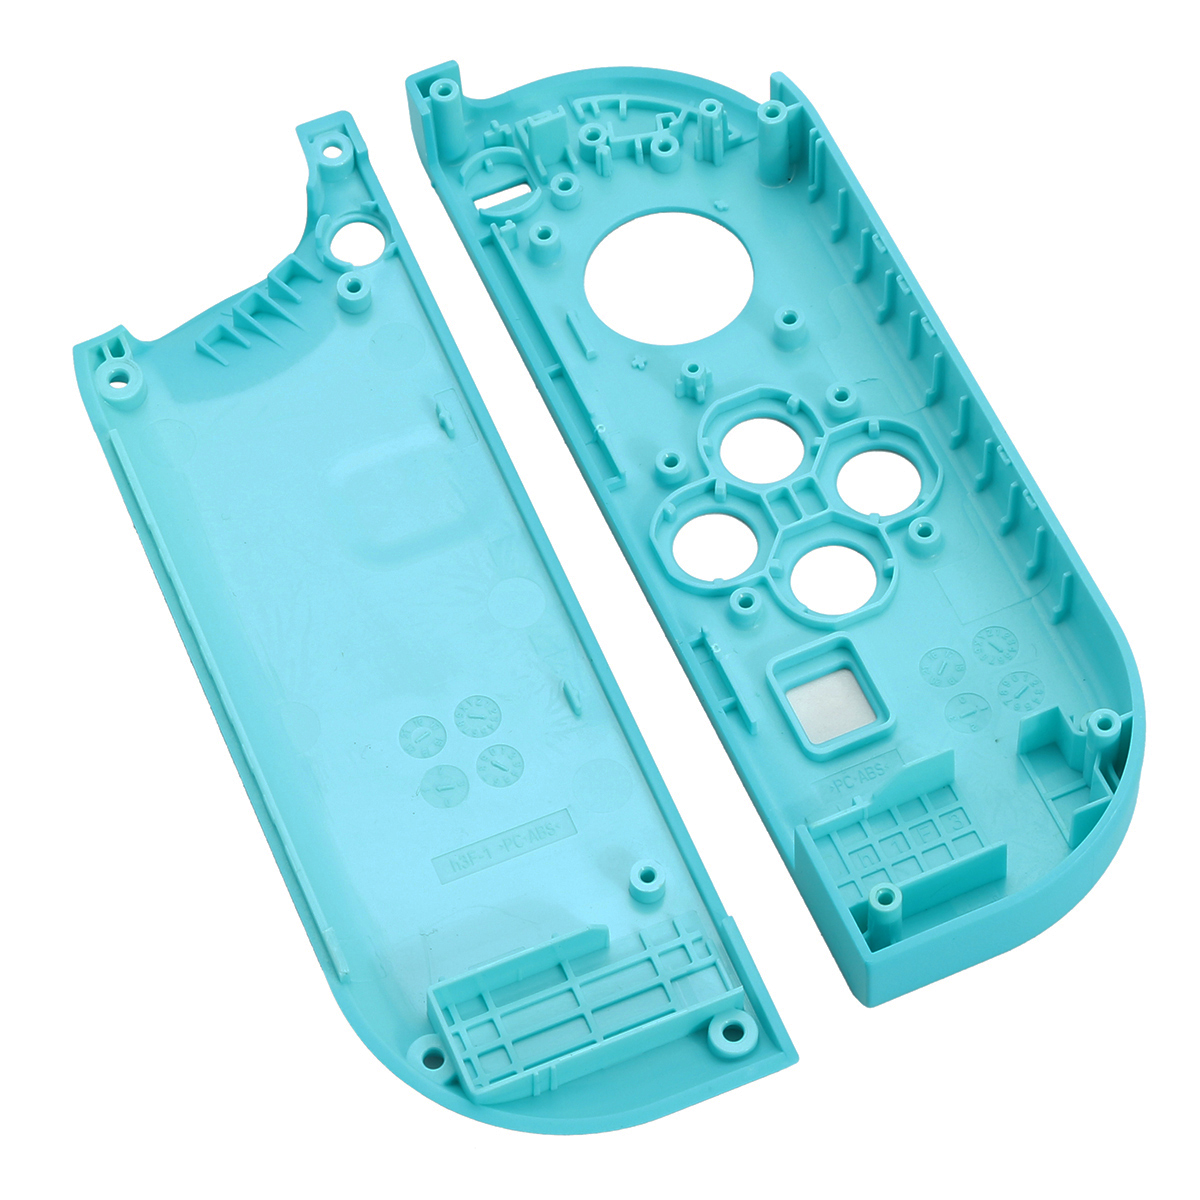 Blue Housing Shell Case with Repair Tool for Nintendo Switch Joy-Con Video Game Controller